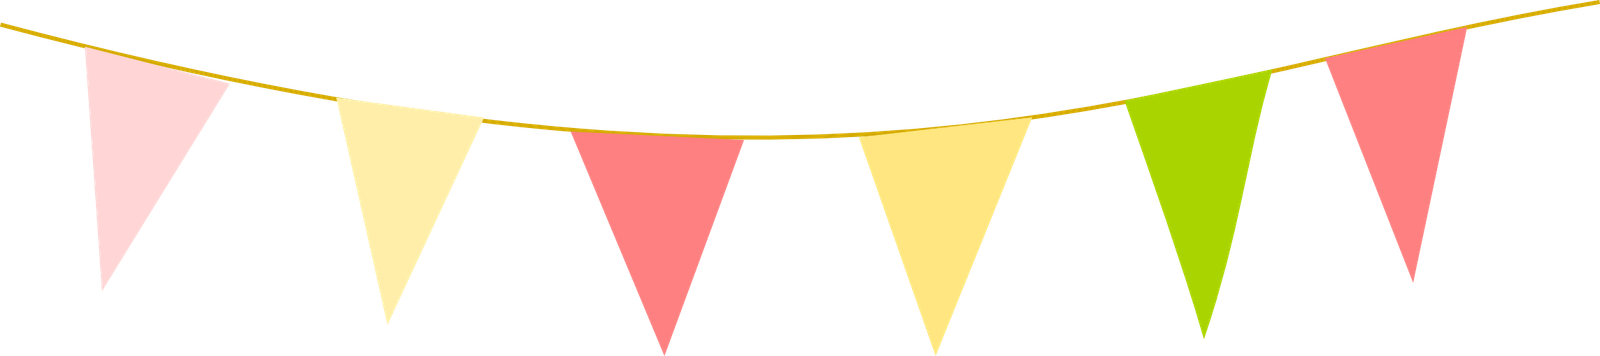 1600x356 Carnival Clipart Flag Bunting